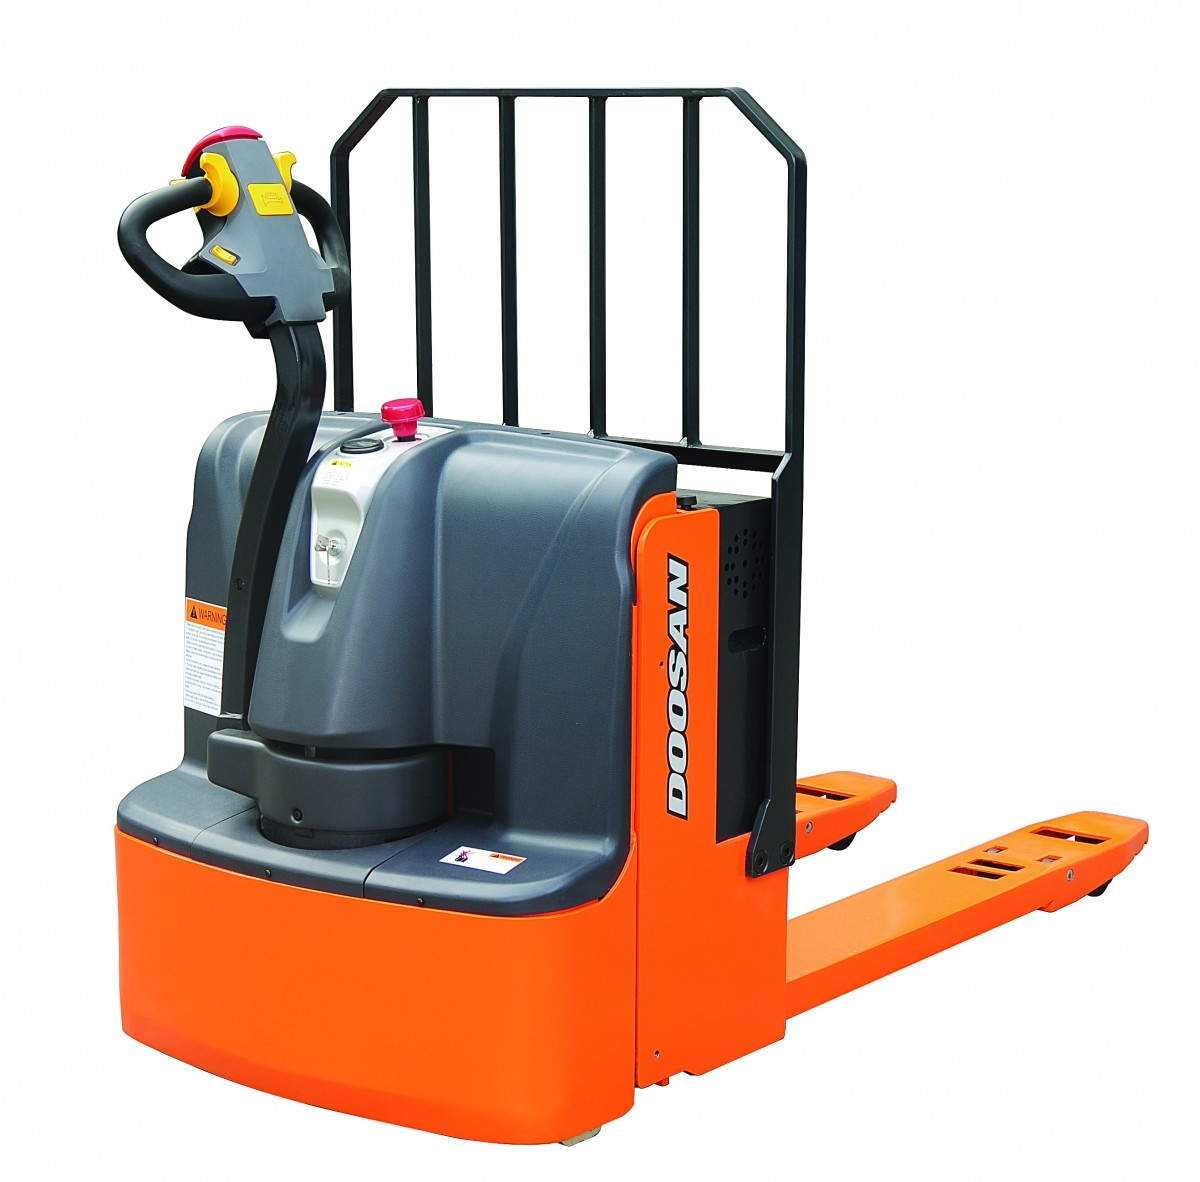 New, 2018, Doosan Industrial Vehicle, BW23S-7 Walkie Pallet Truck, Forklifts / Lift Trucks